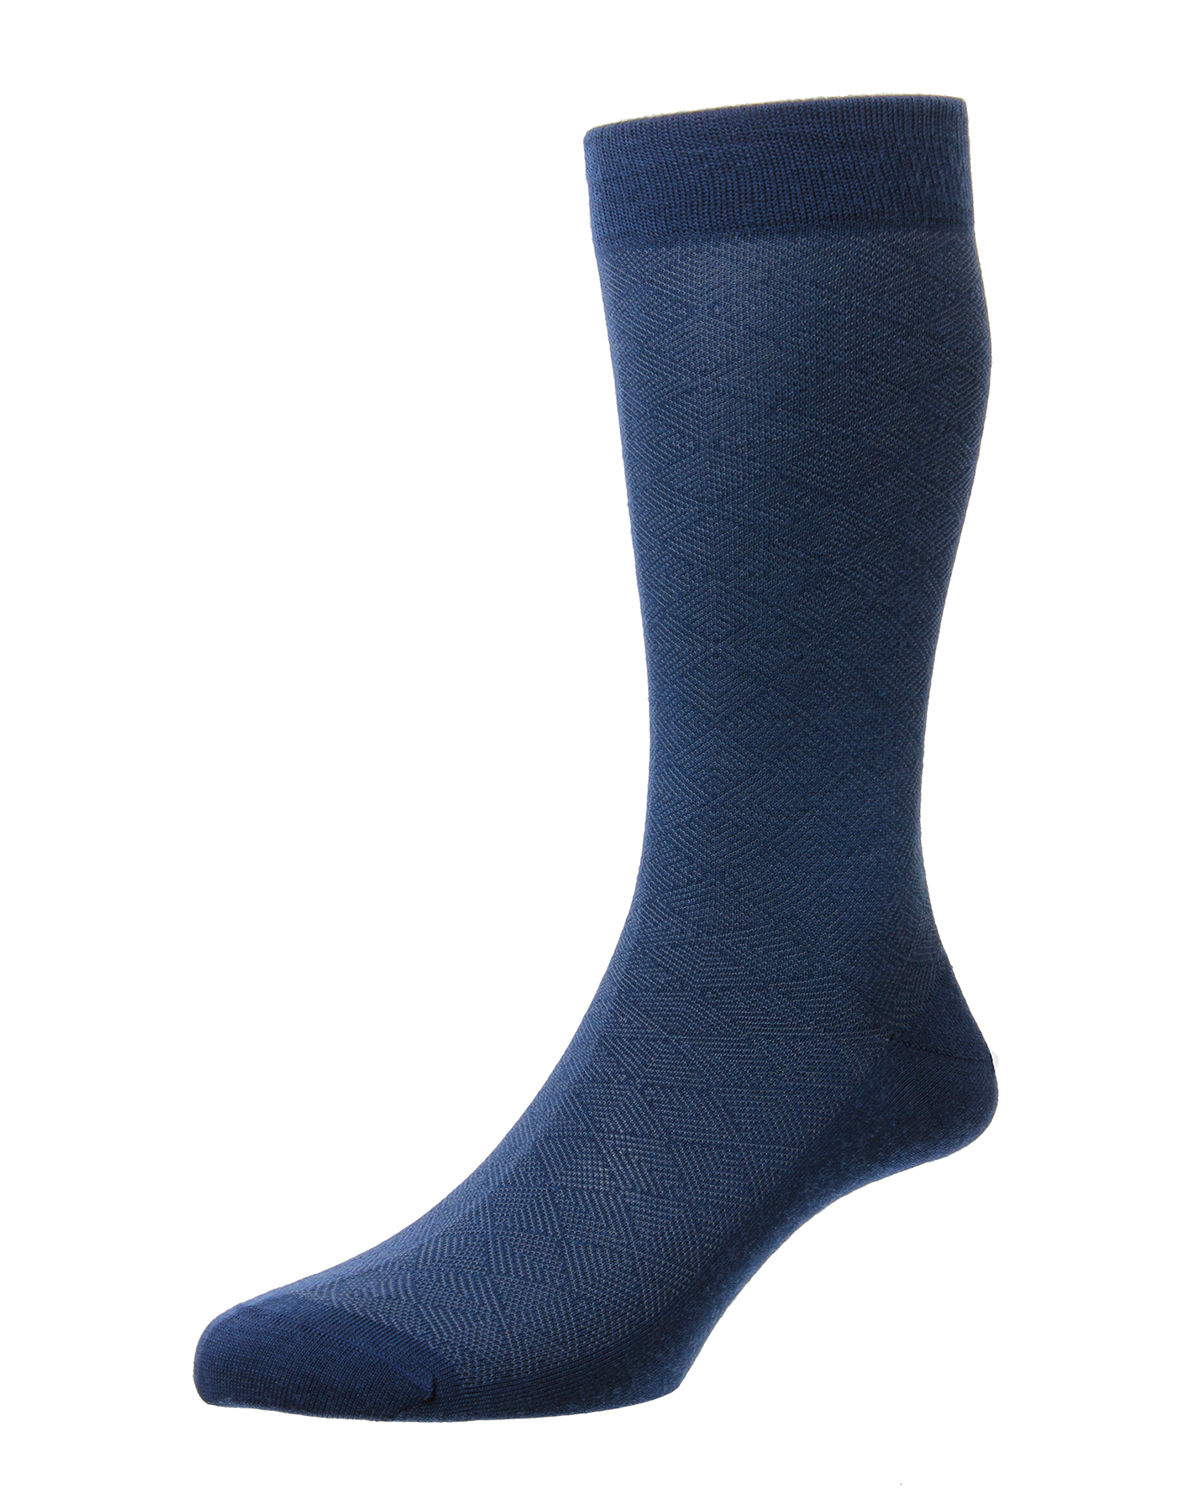 Pantherella Socks MEN'S DUNSTER WOOL SOCKS